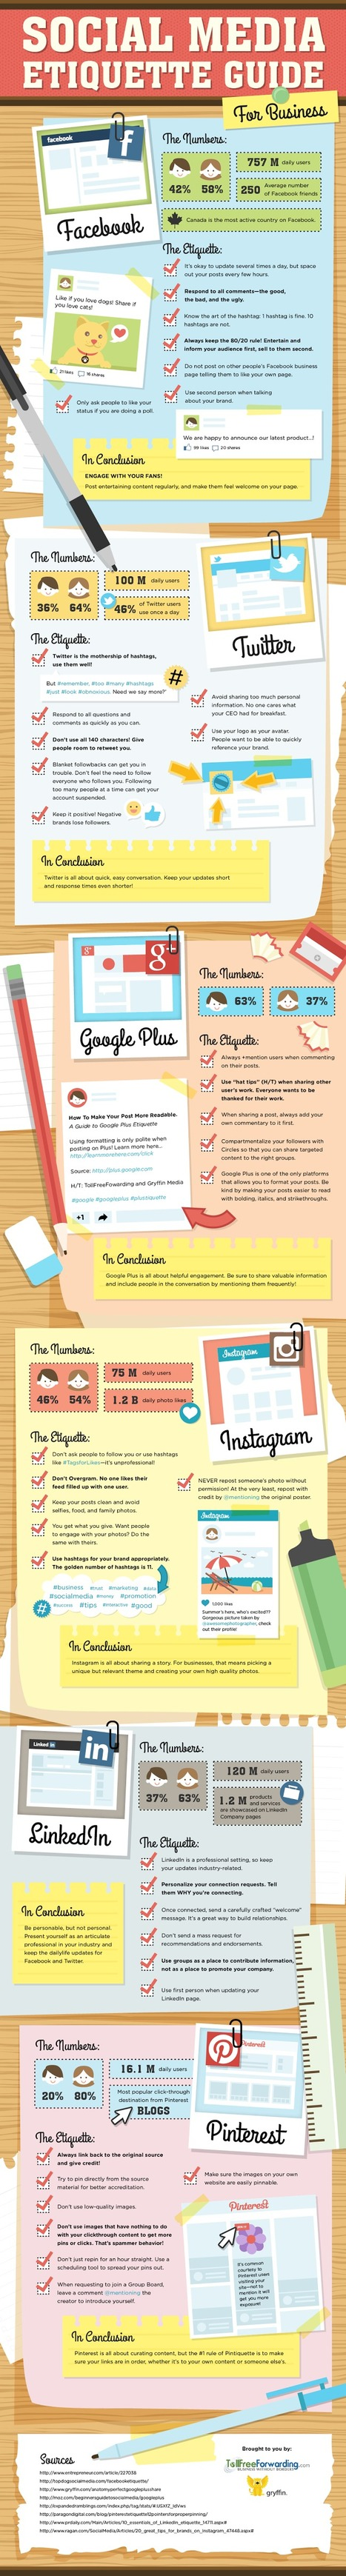 GooglePlus, Twitter, Instagram, Facebook, Pinterest - Social Media Etiquette Guide For Business - #infographic | Time to Learn | Scoop.it